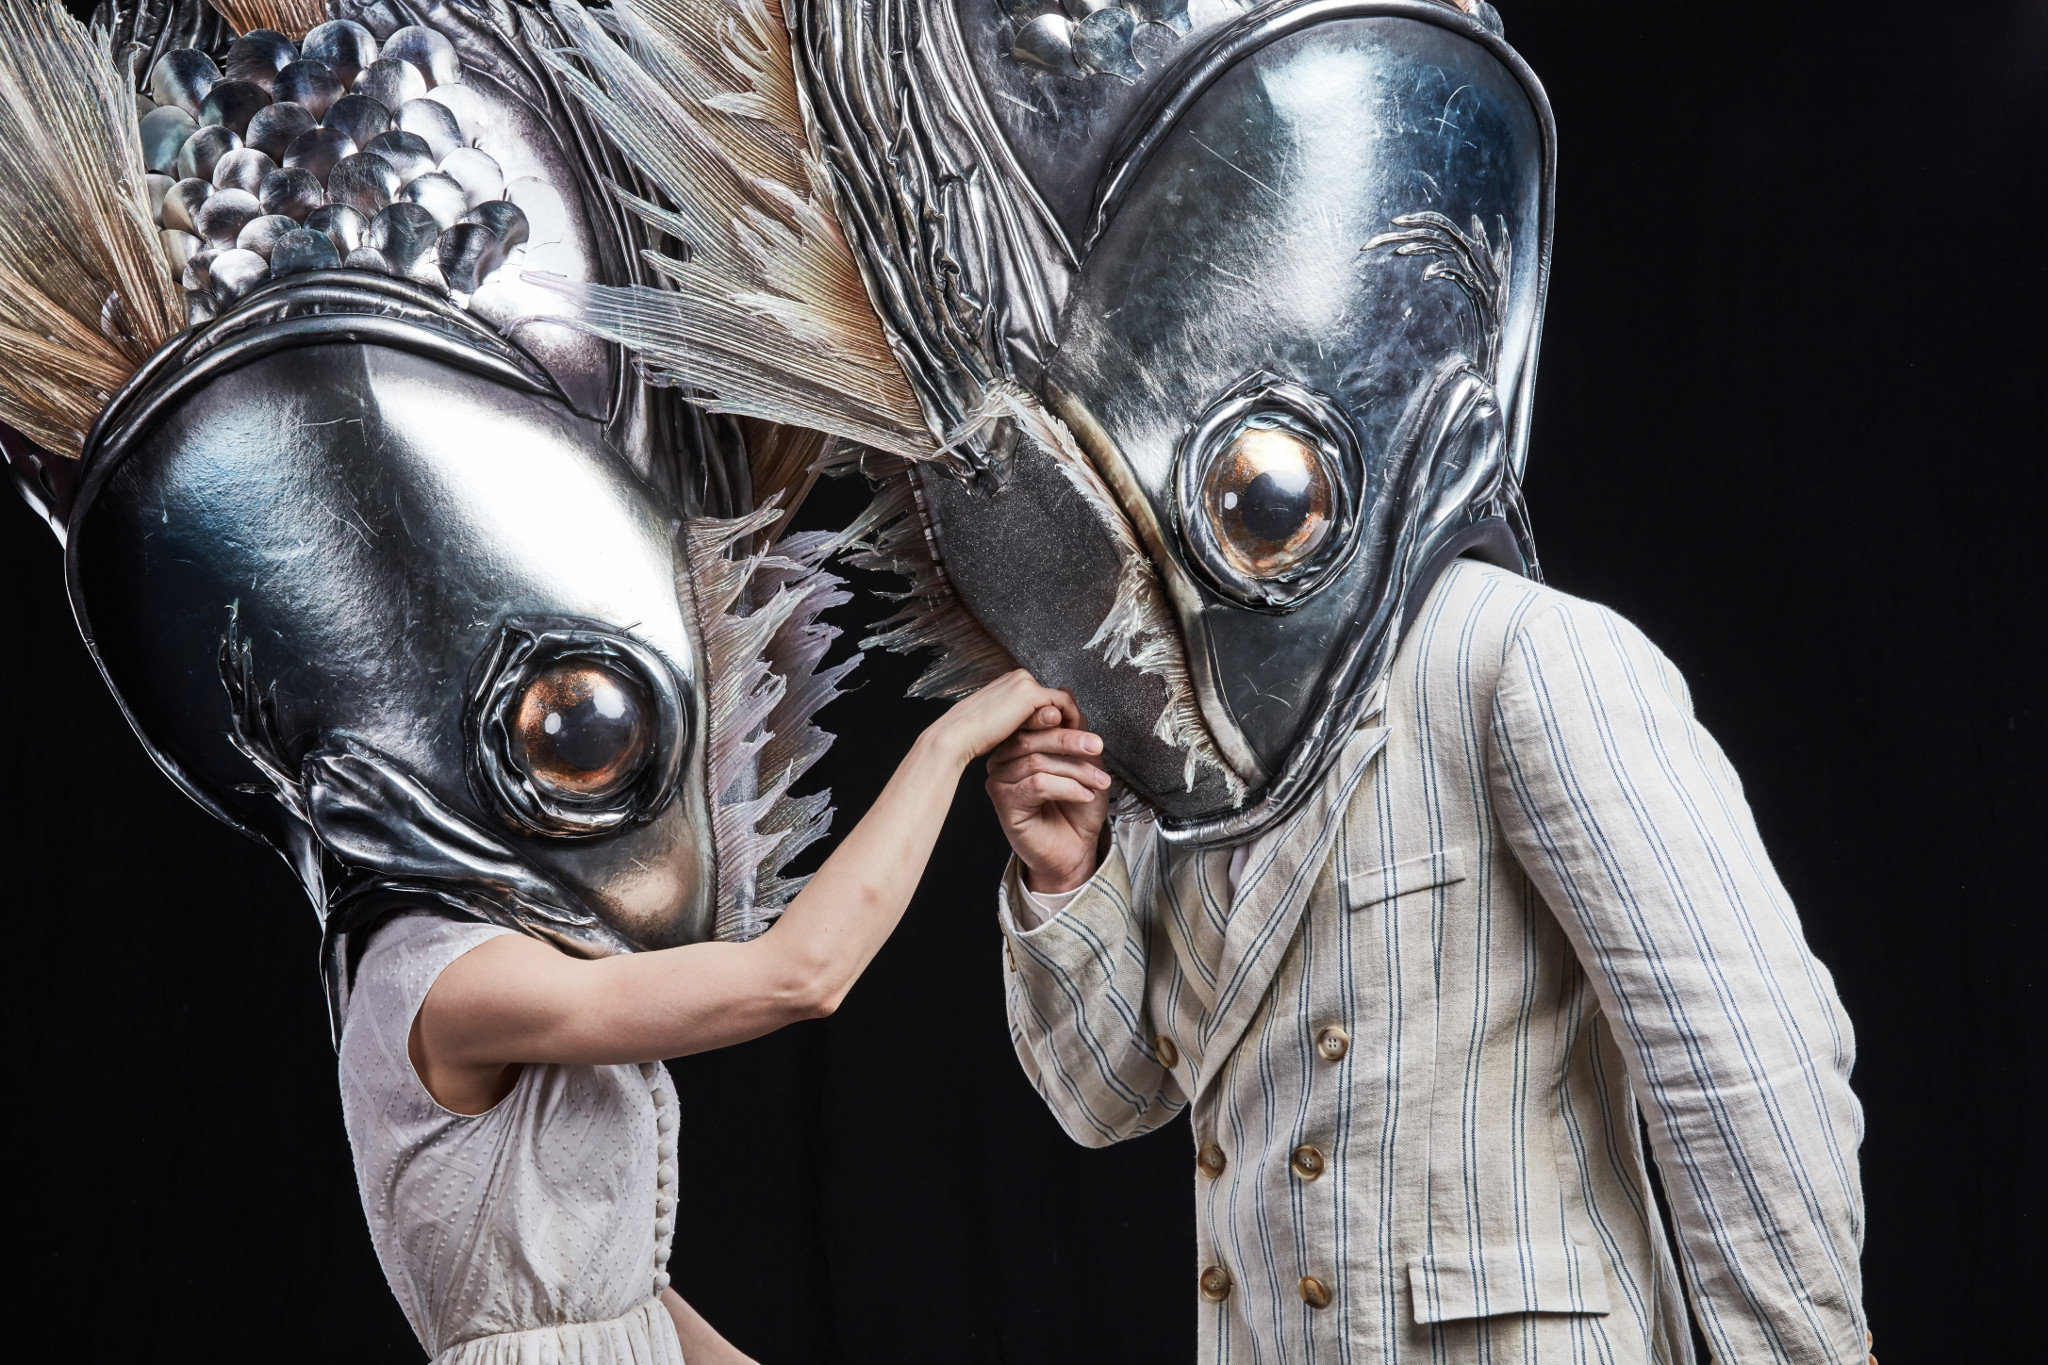 dancers in giant fish heads